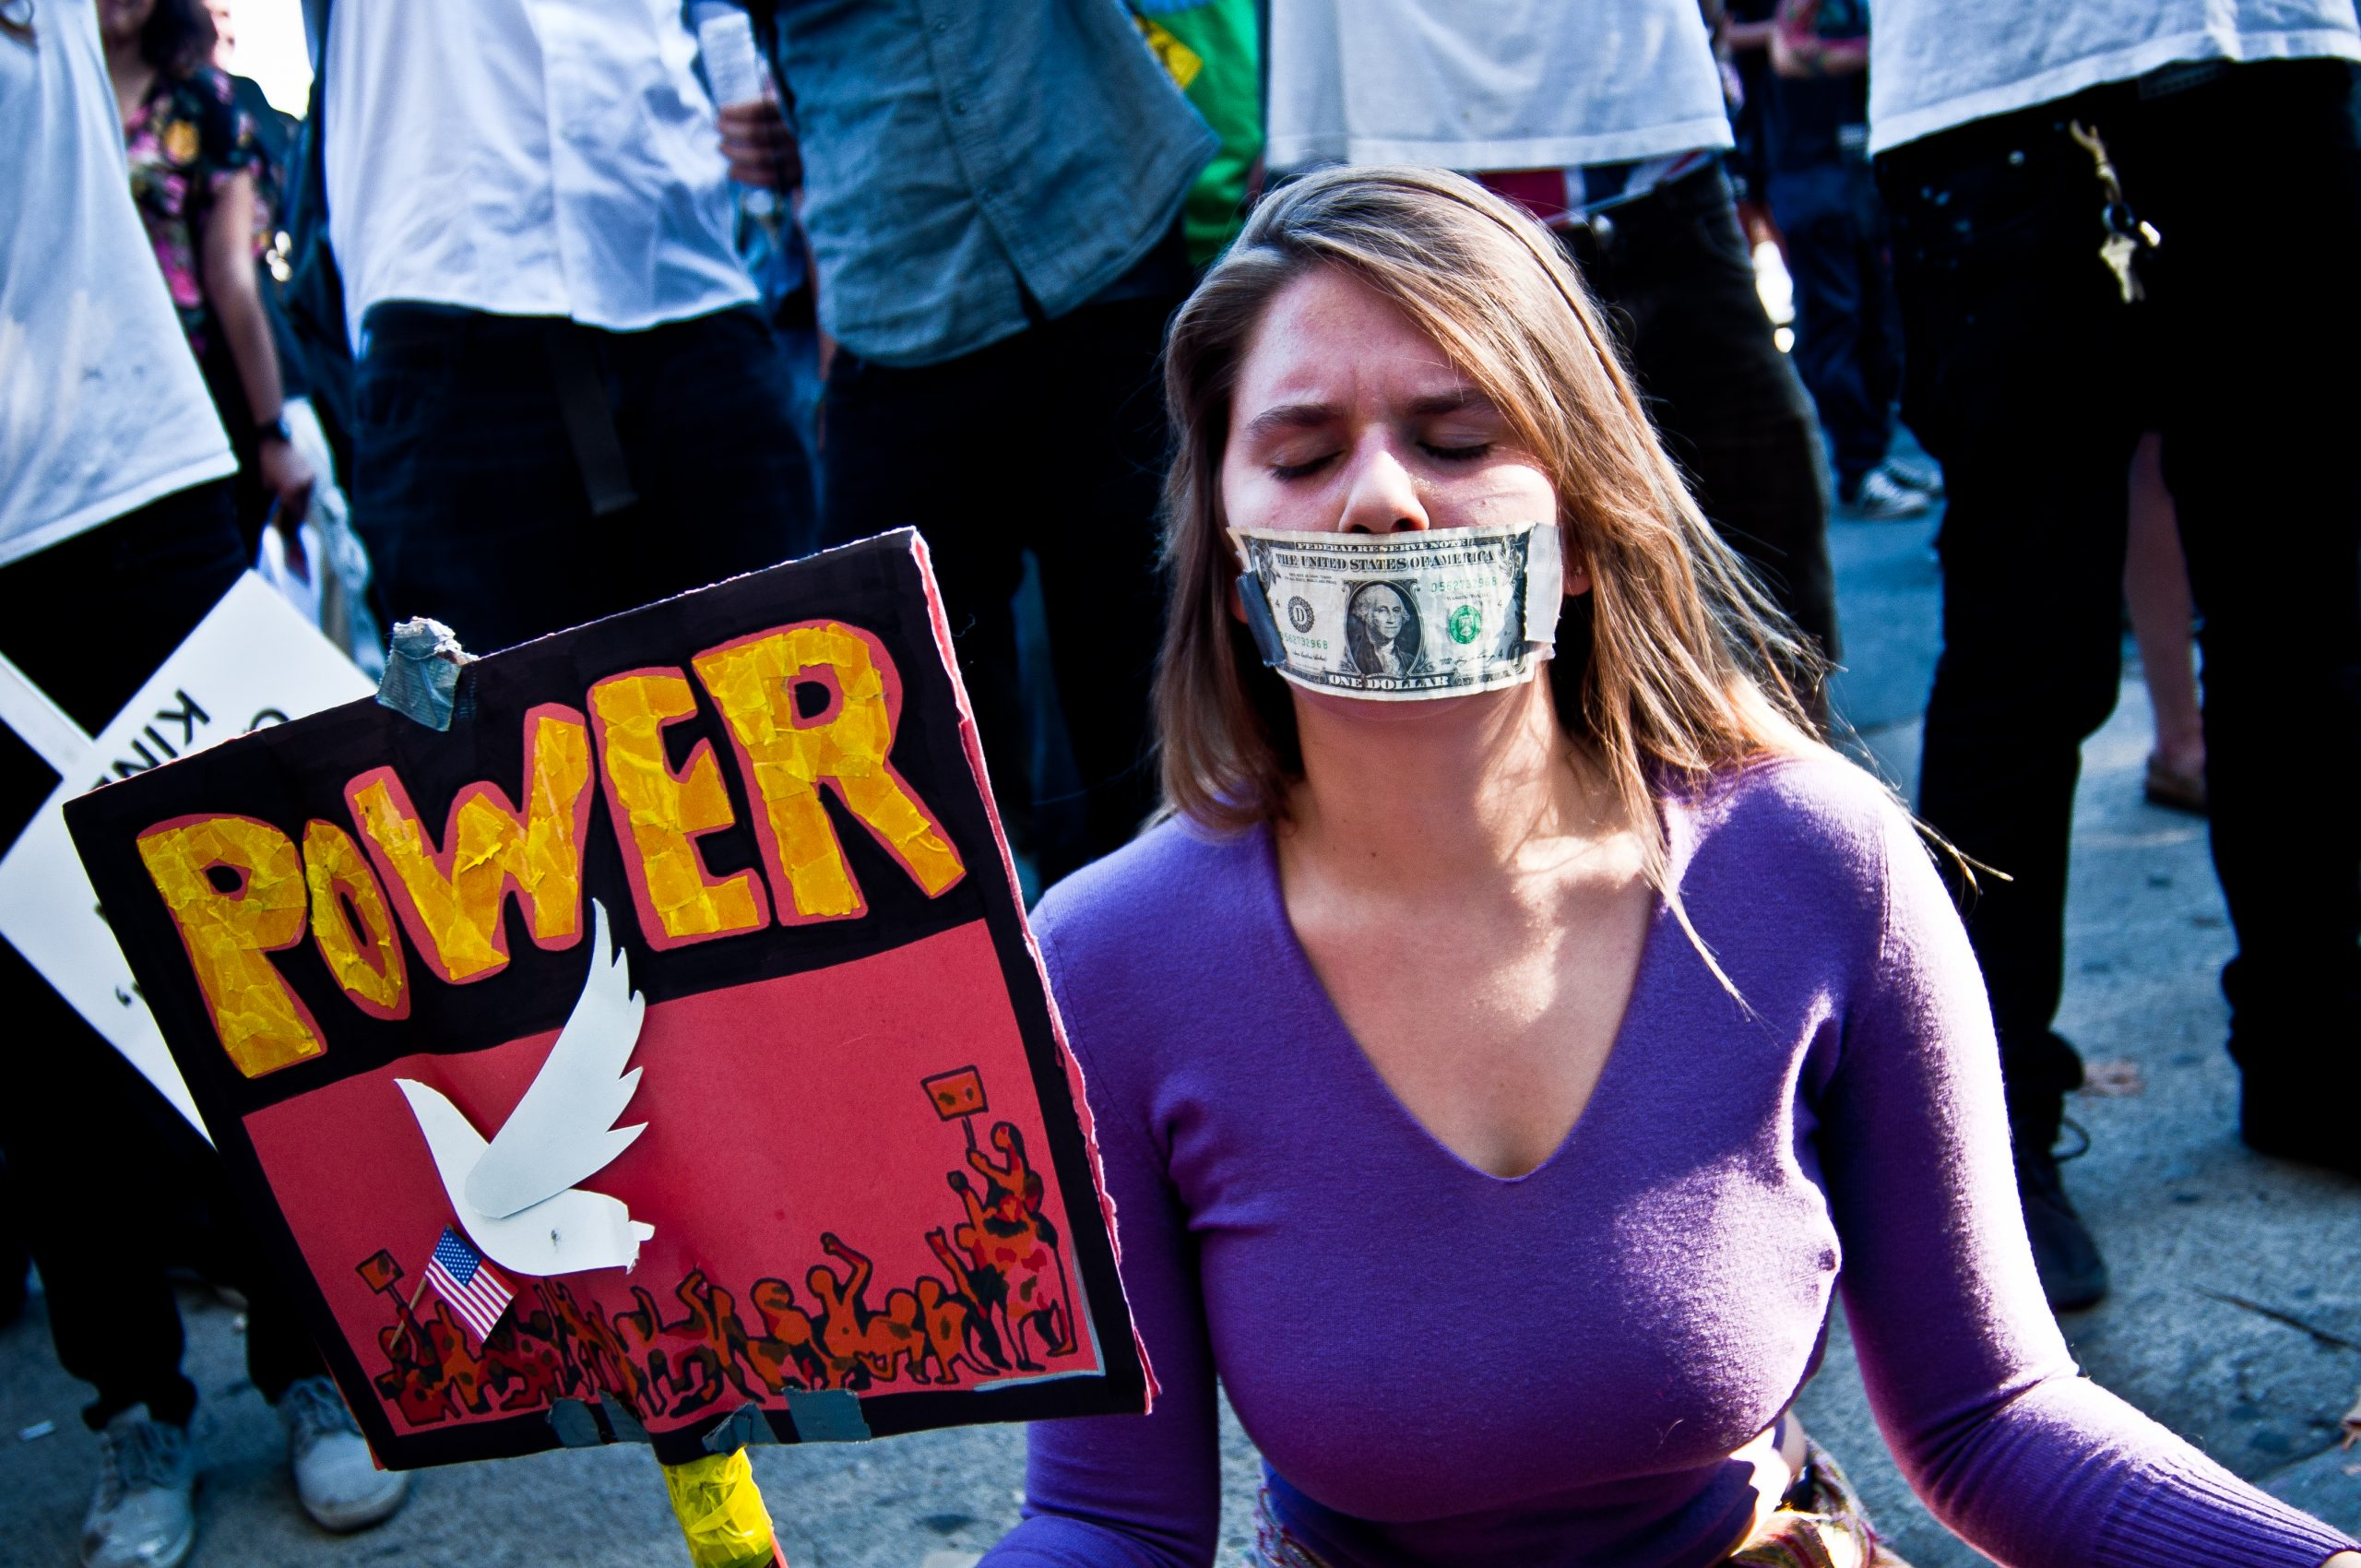 Photograph of a woman with a sign saying POWER. She has a dollar bill taped to her mouth.